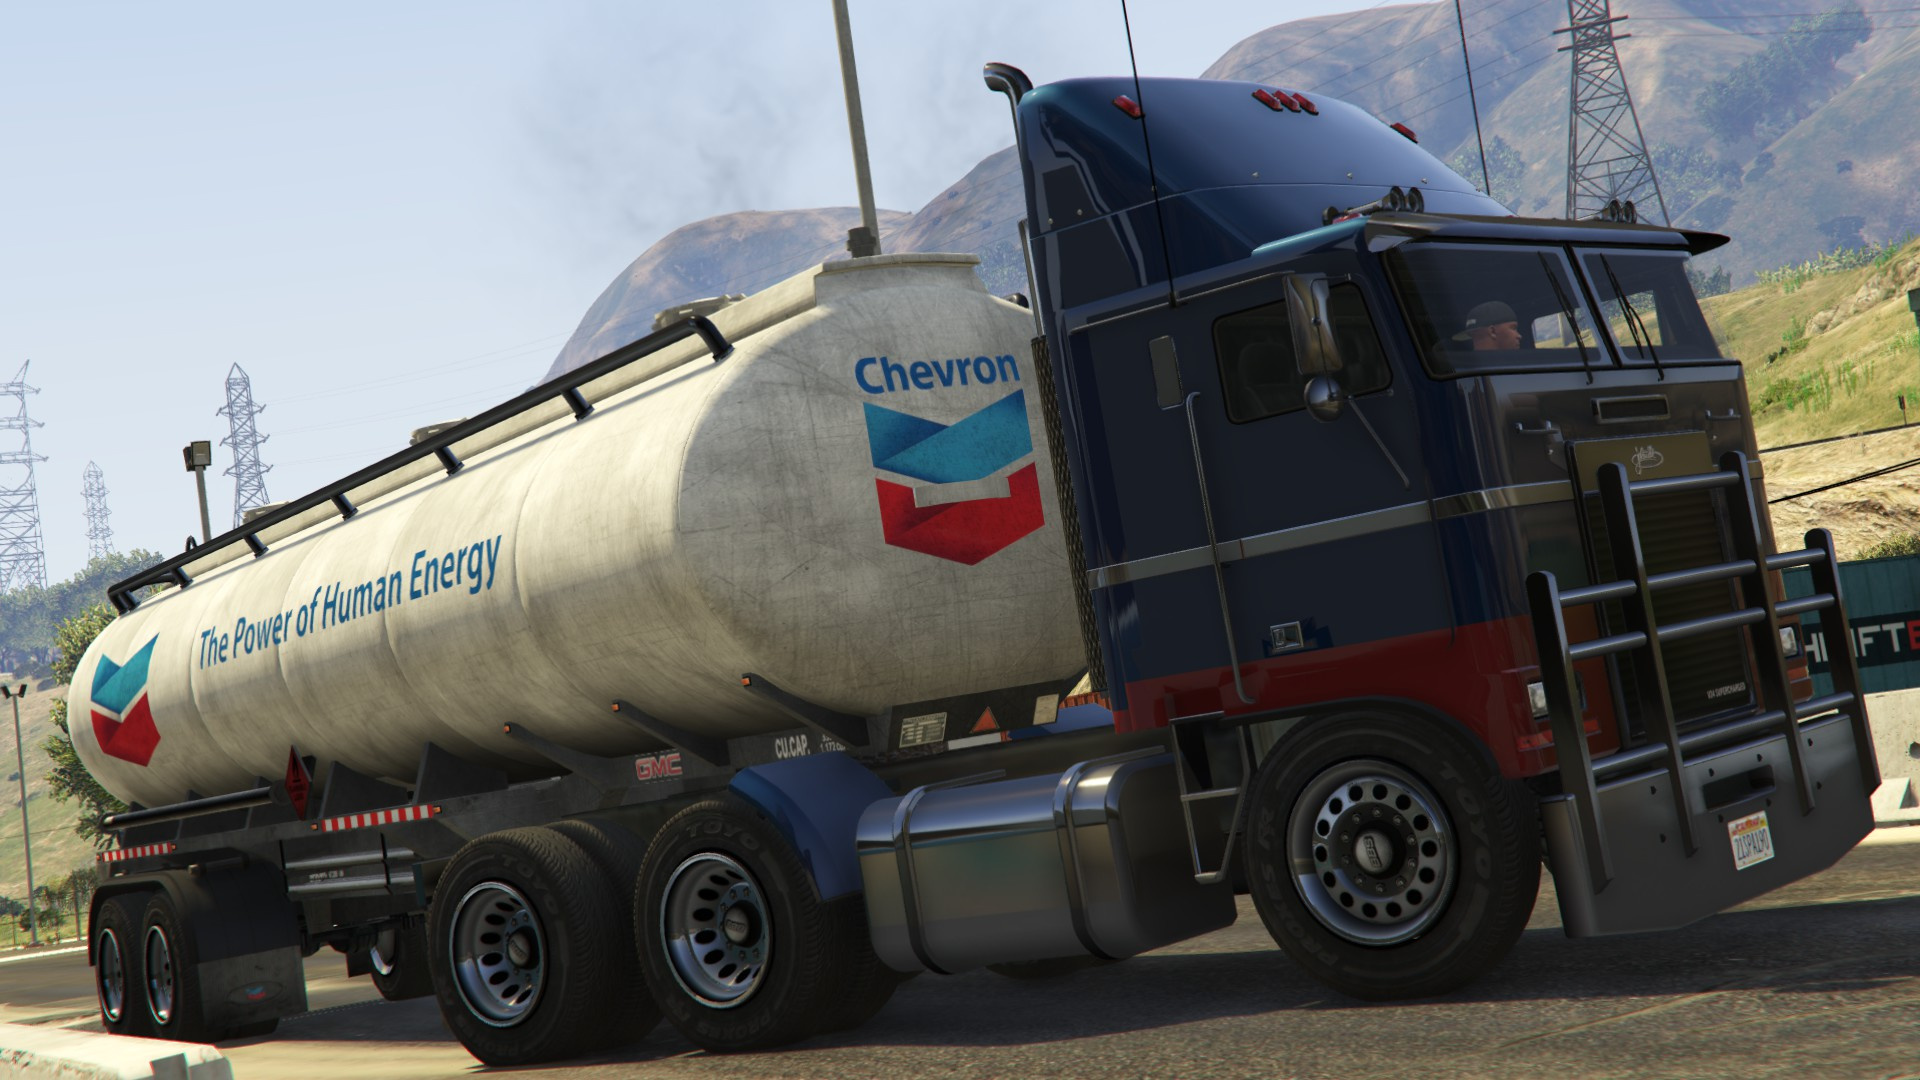 shell texaco esso chevron trailer tanker gta5. Black Bedroom Furniture Sets. Home Design Ideas